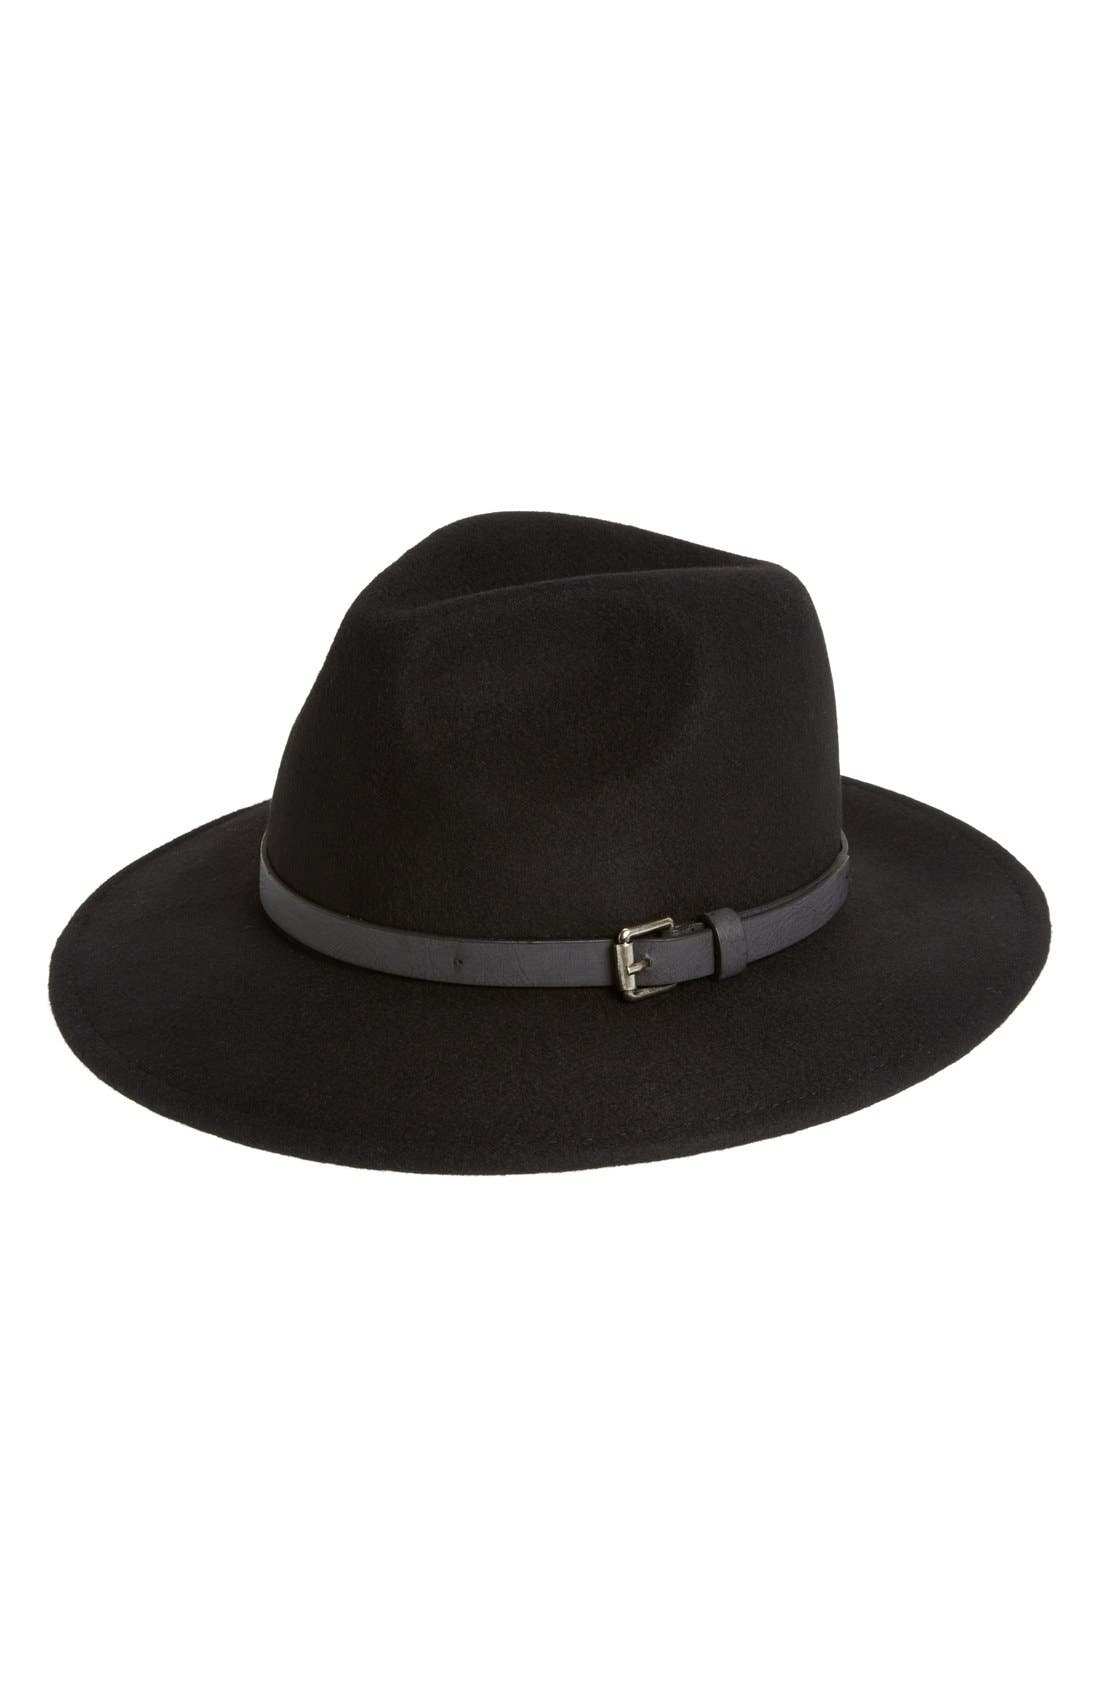 Alternate Image 1 Selected - Sole Society Wool Panama Hat